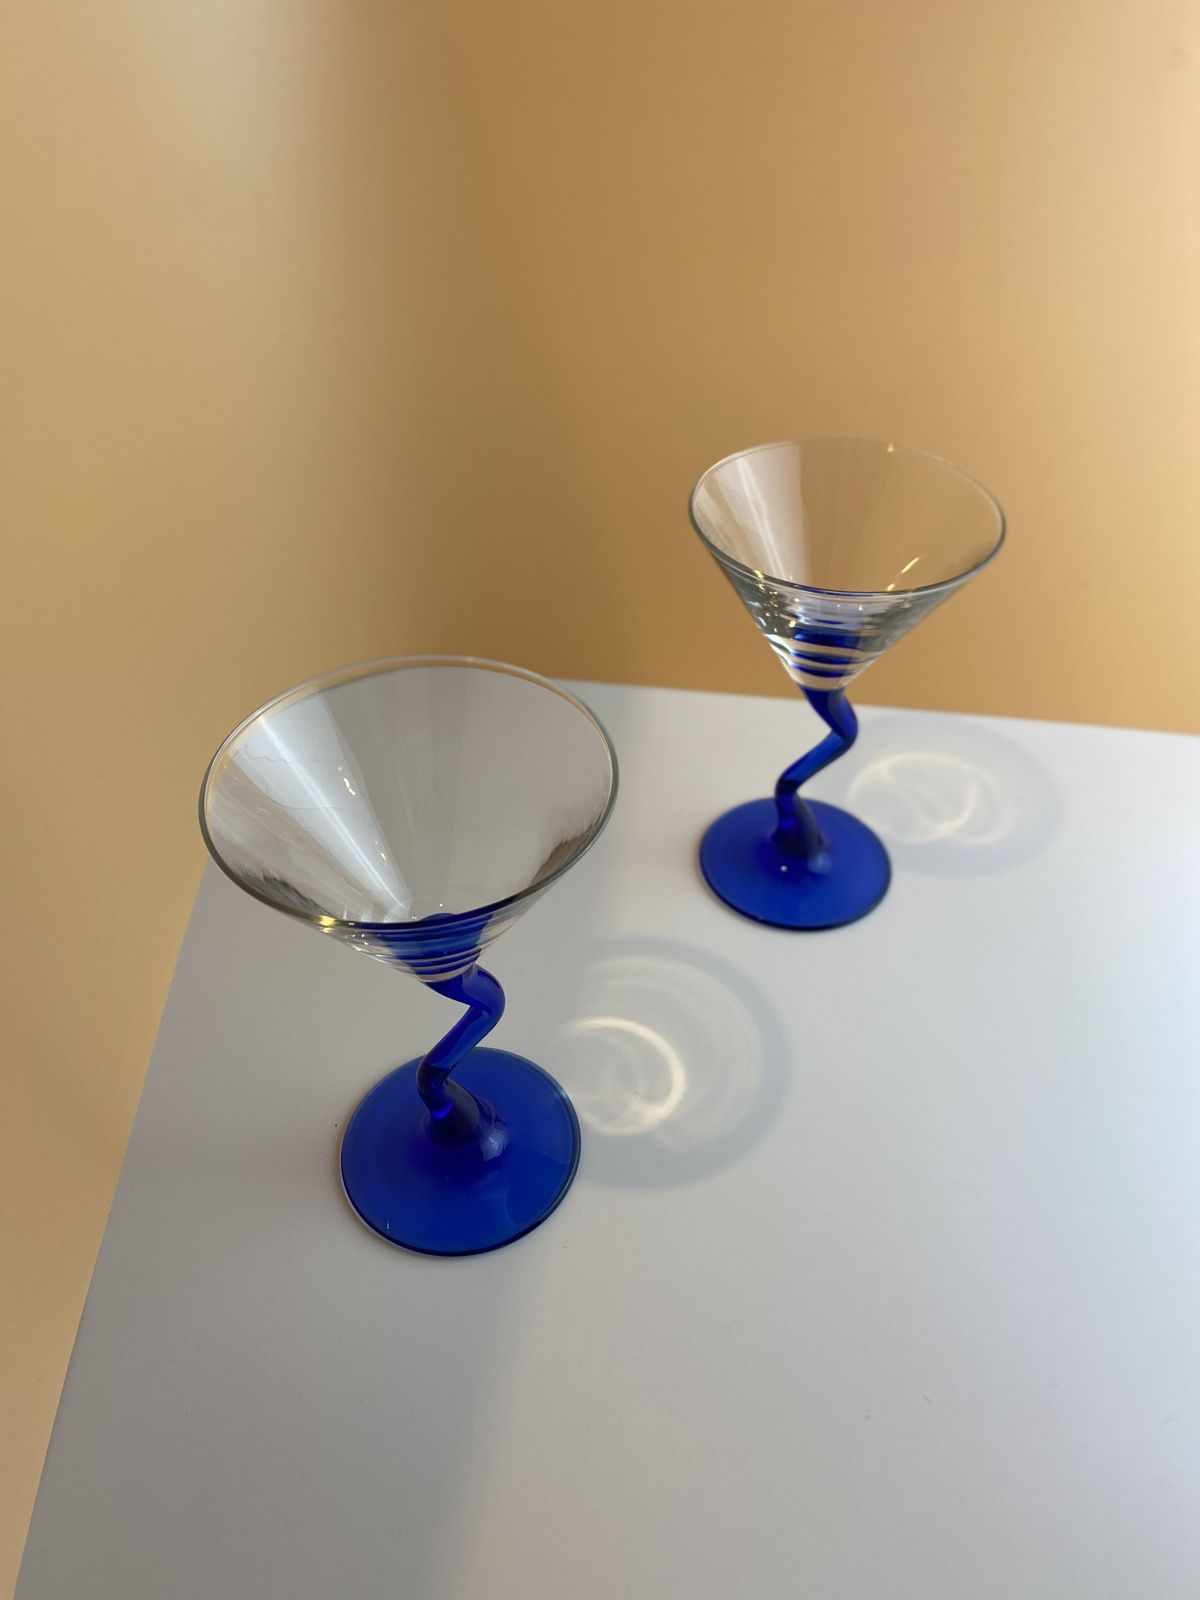 Two martini glasses with wavy, blue stems